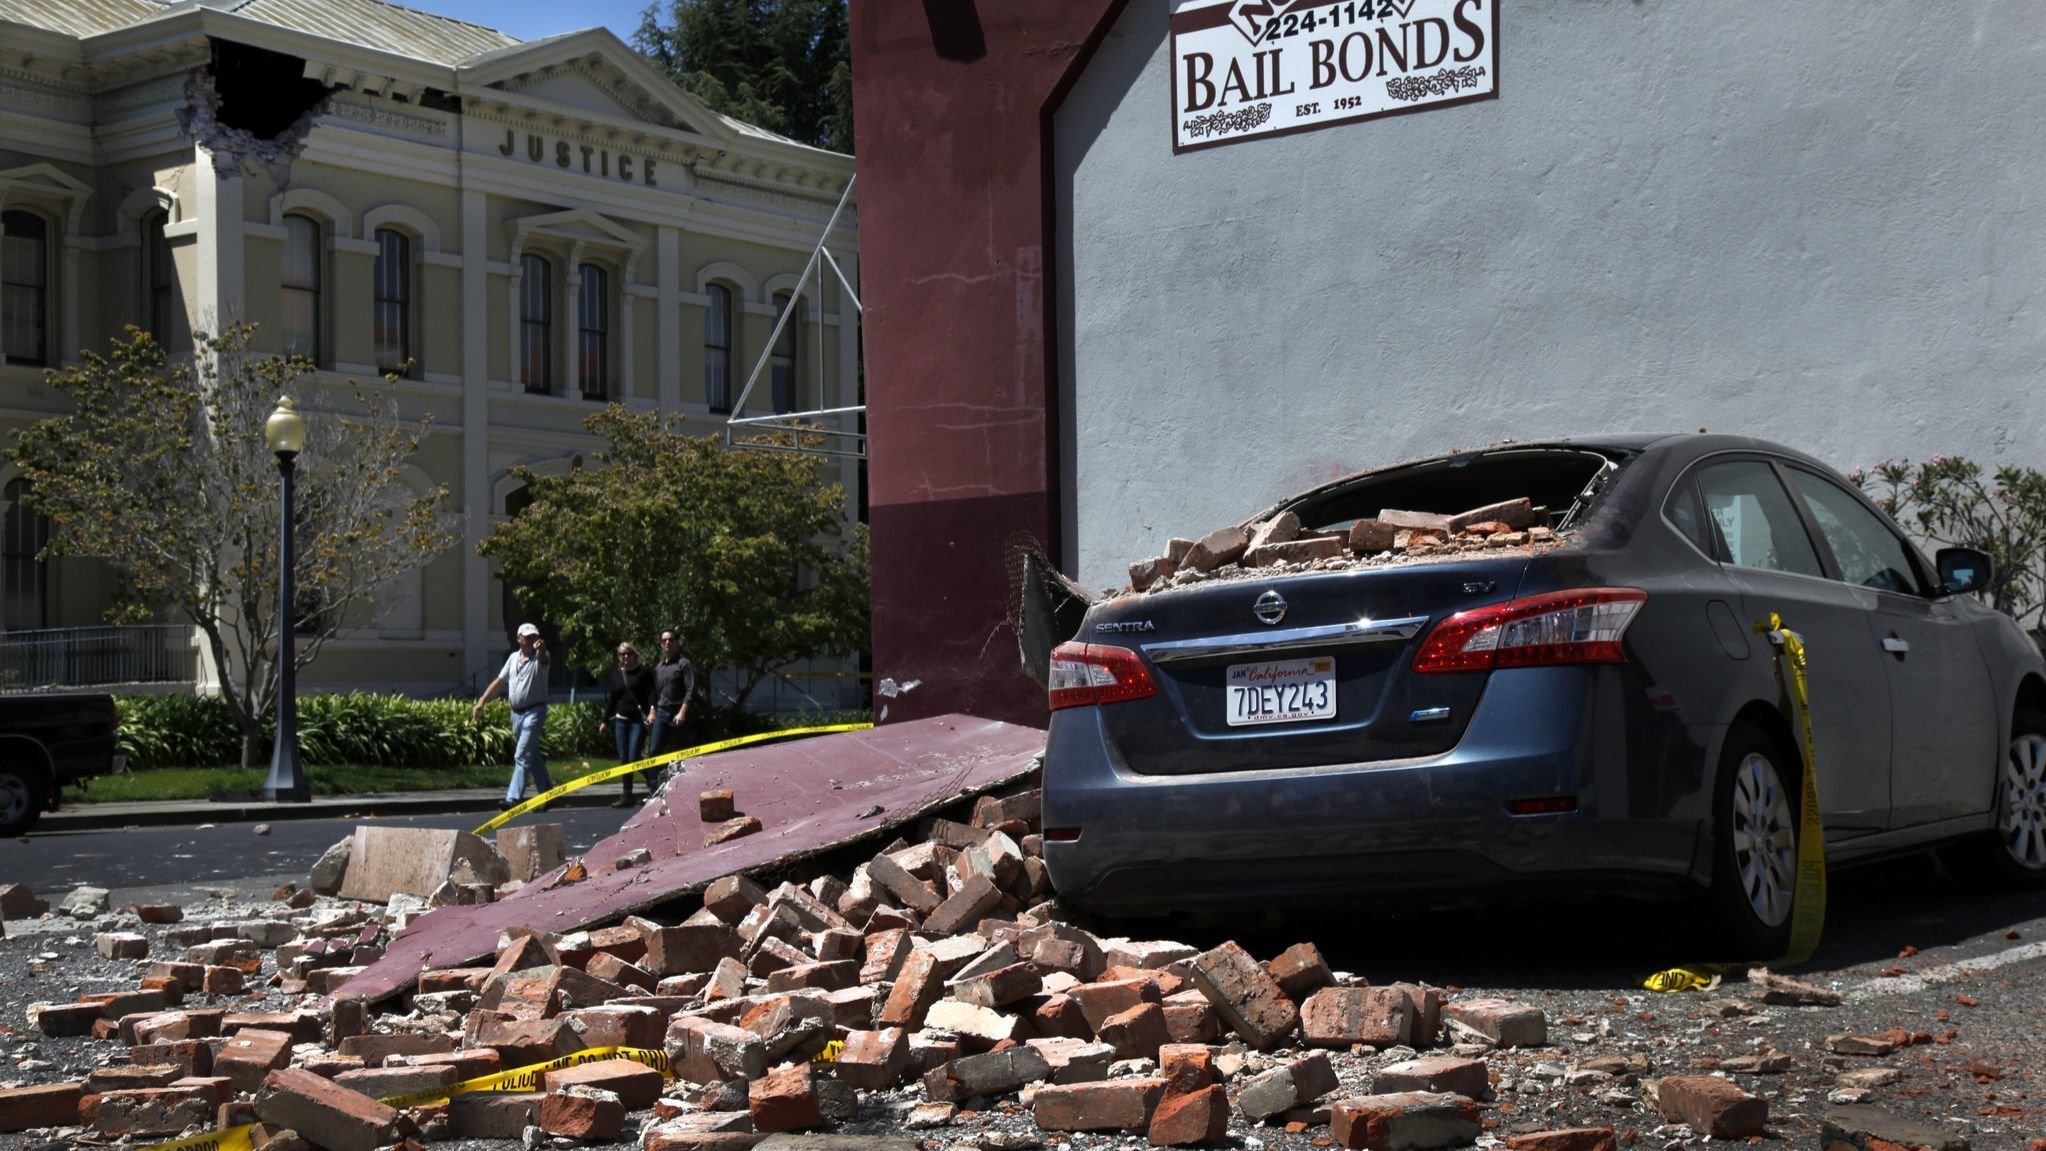 NAPA, CA. — SUNDAY, AUGUST 24, 2014 — A 6.0 earthquake damaged several buildings and caused severa